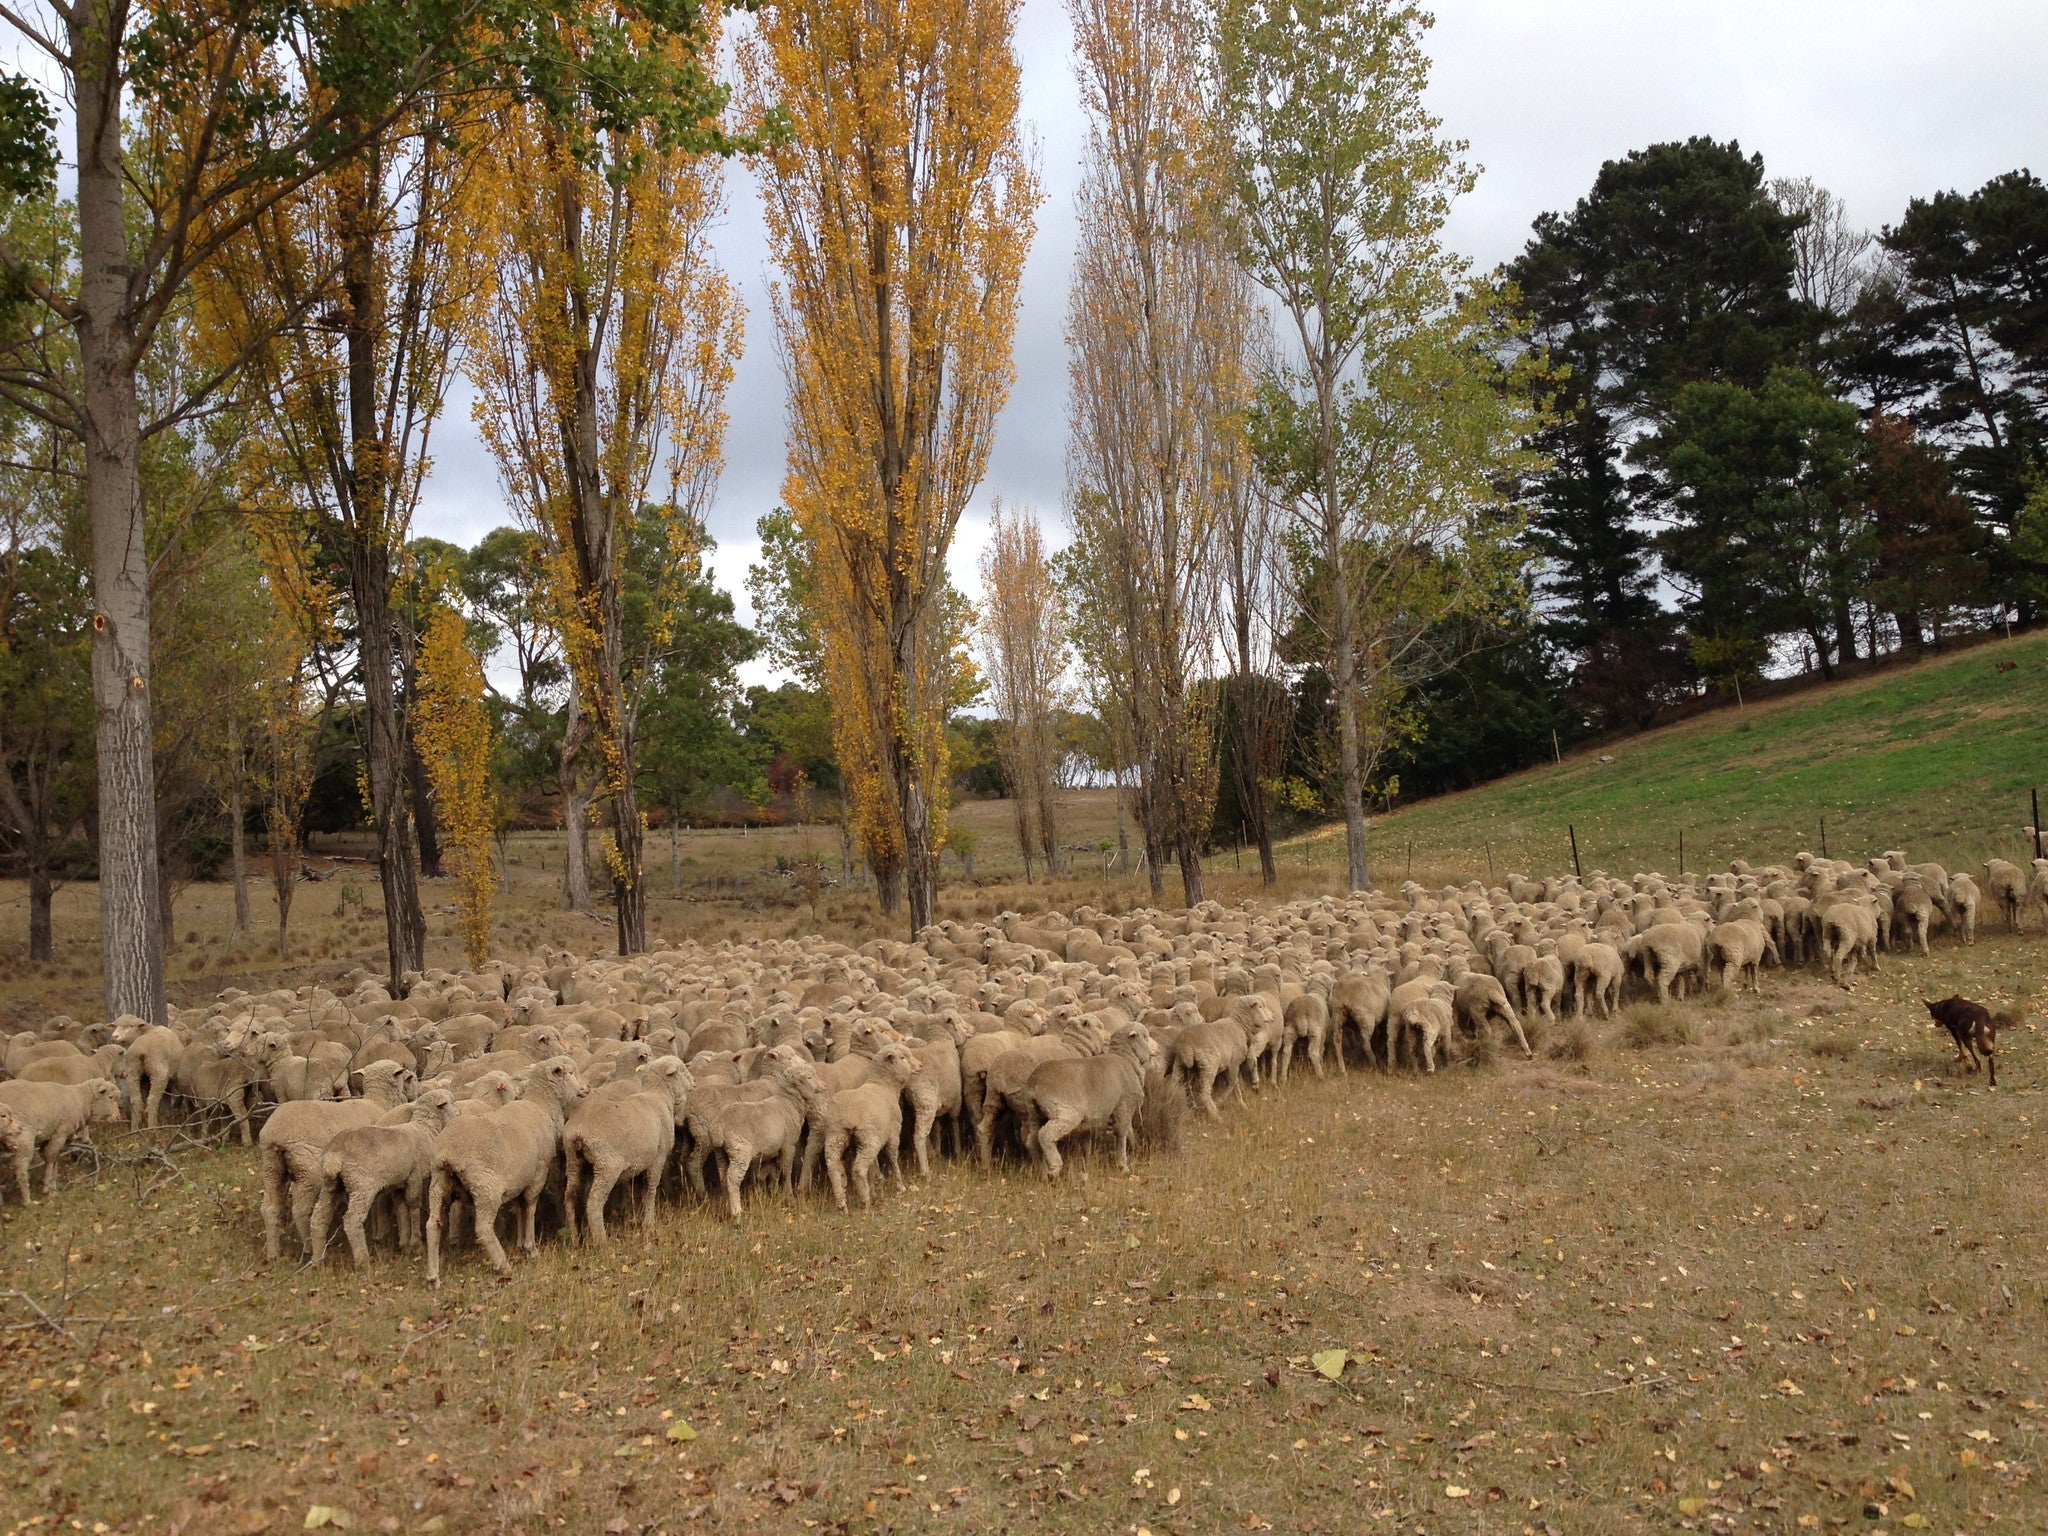 Visiting Mill Post: 14 thoughts & learnings from a sheep station